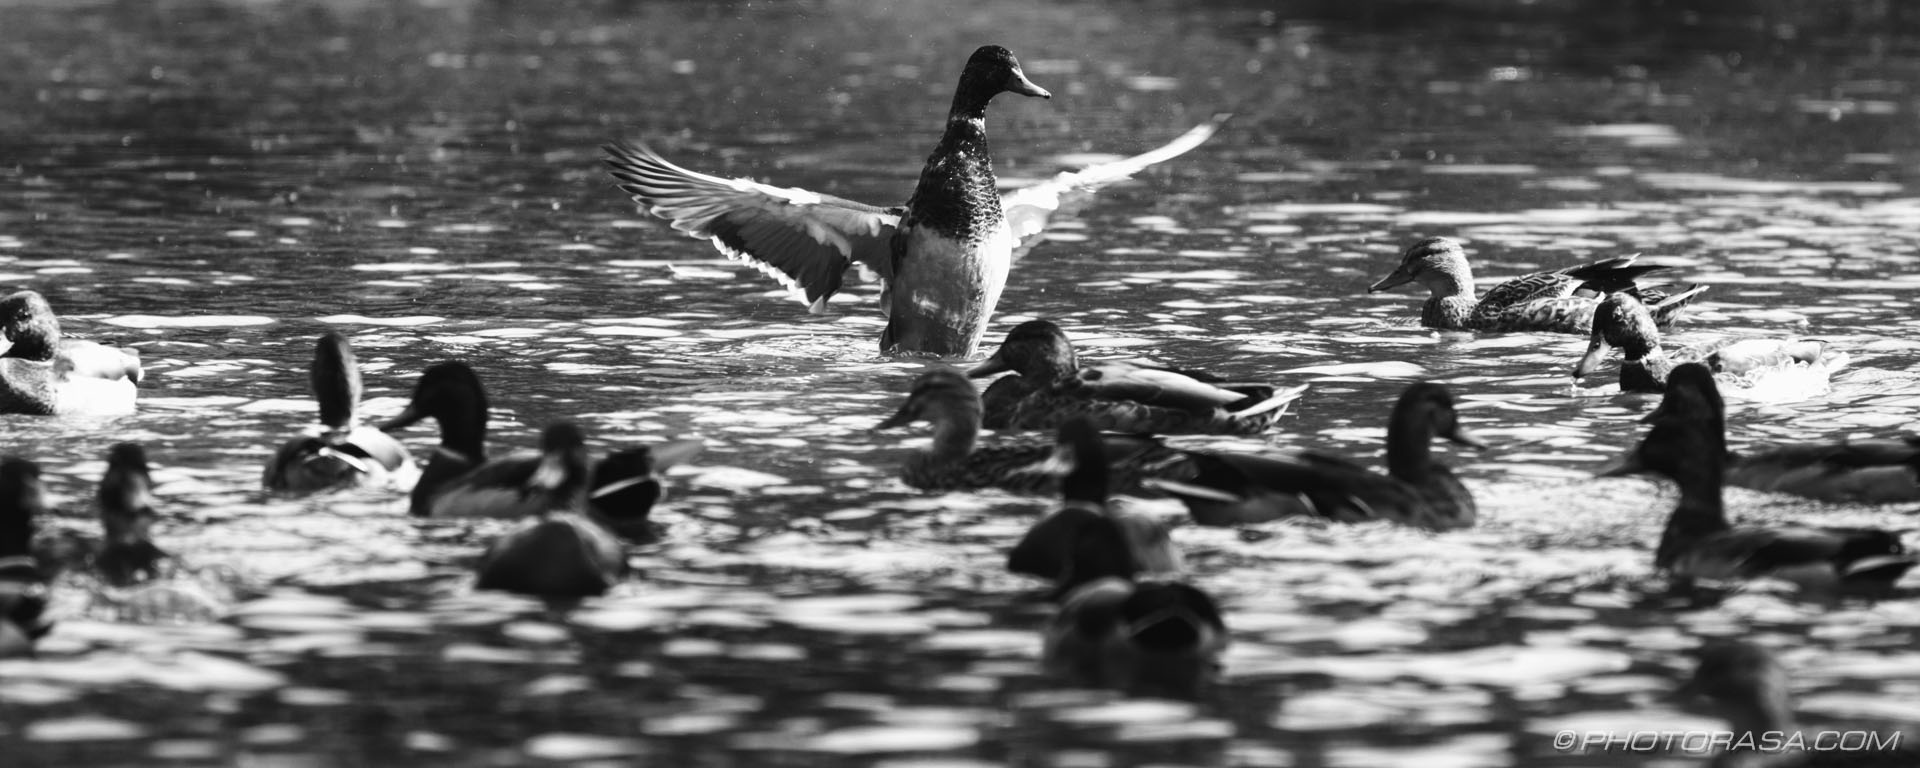 http://photorasa.com/mallard-ducks/duck-conducting/